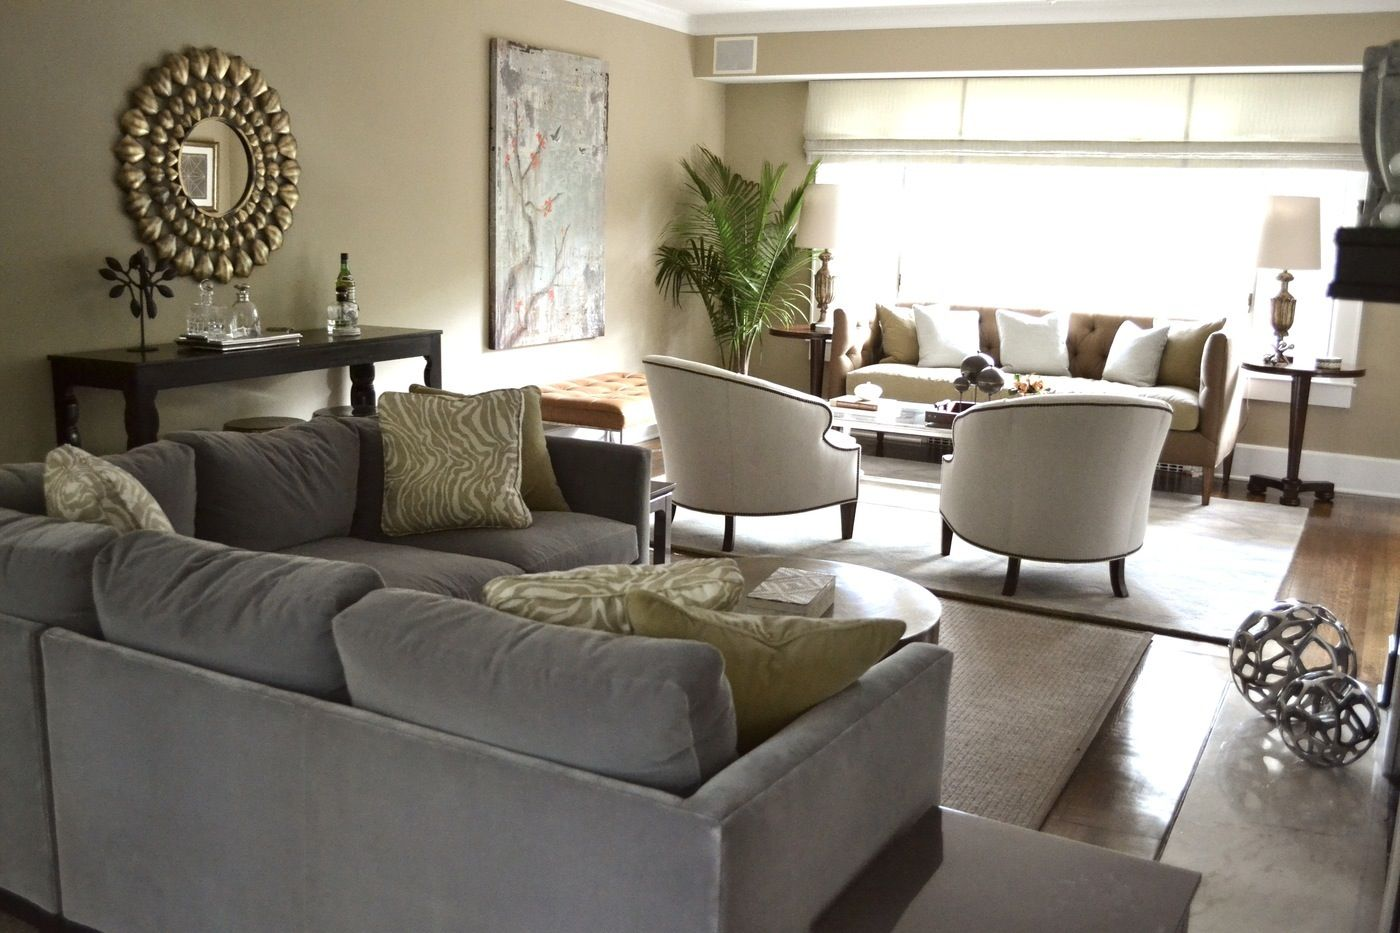 small sofa for bedroom sitting area leather melbourne fl living room with two seating areas future